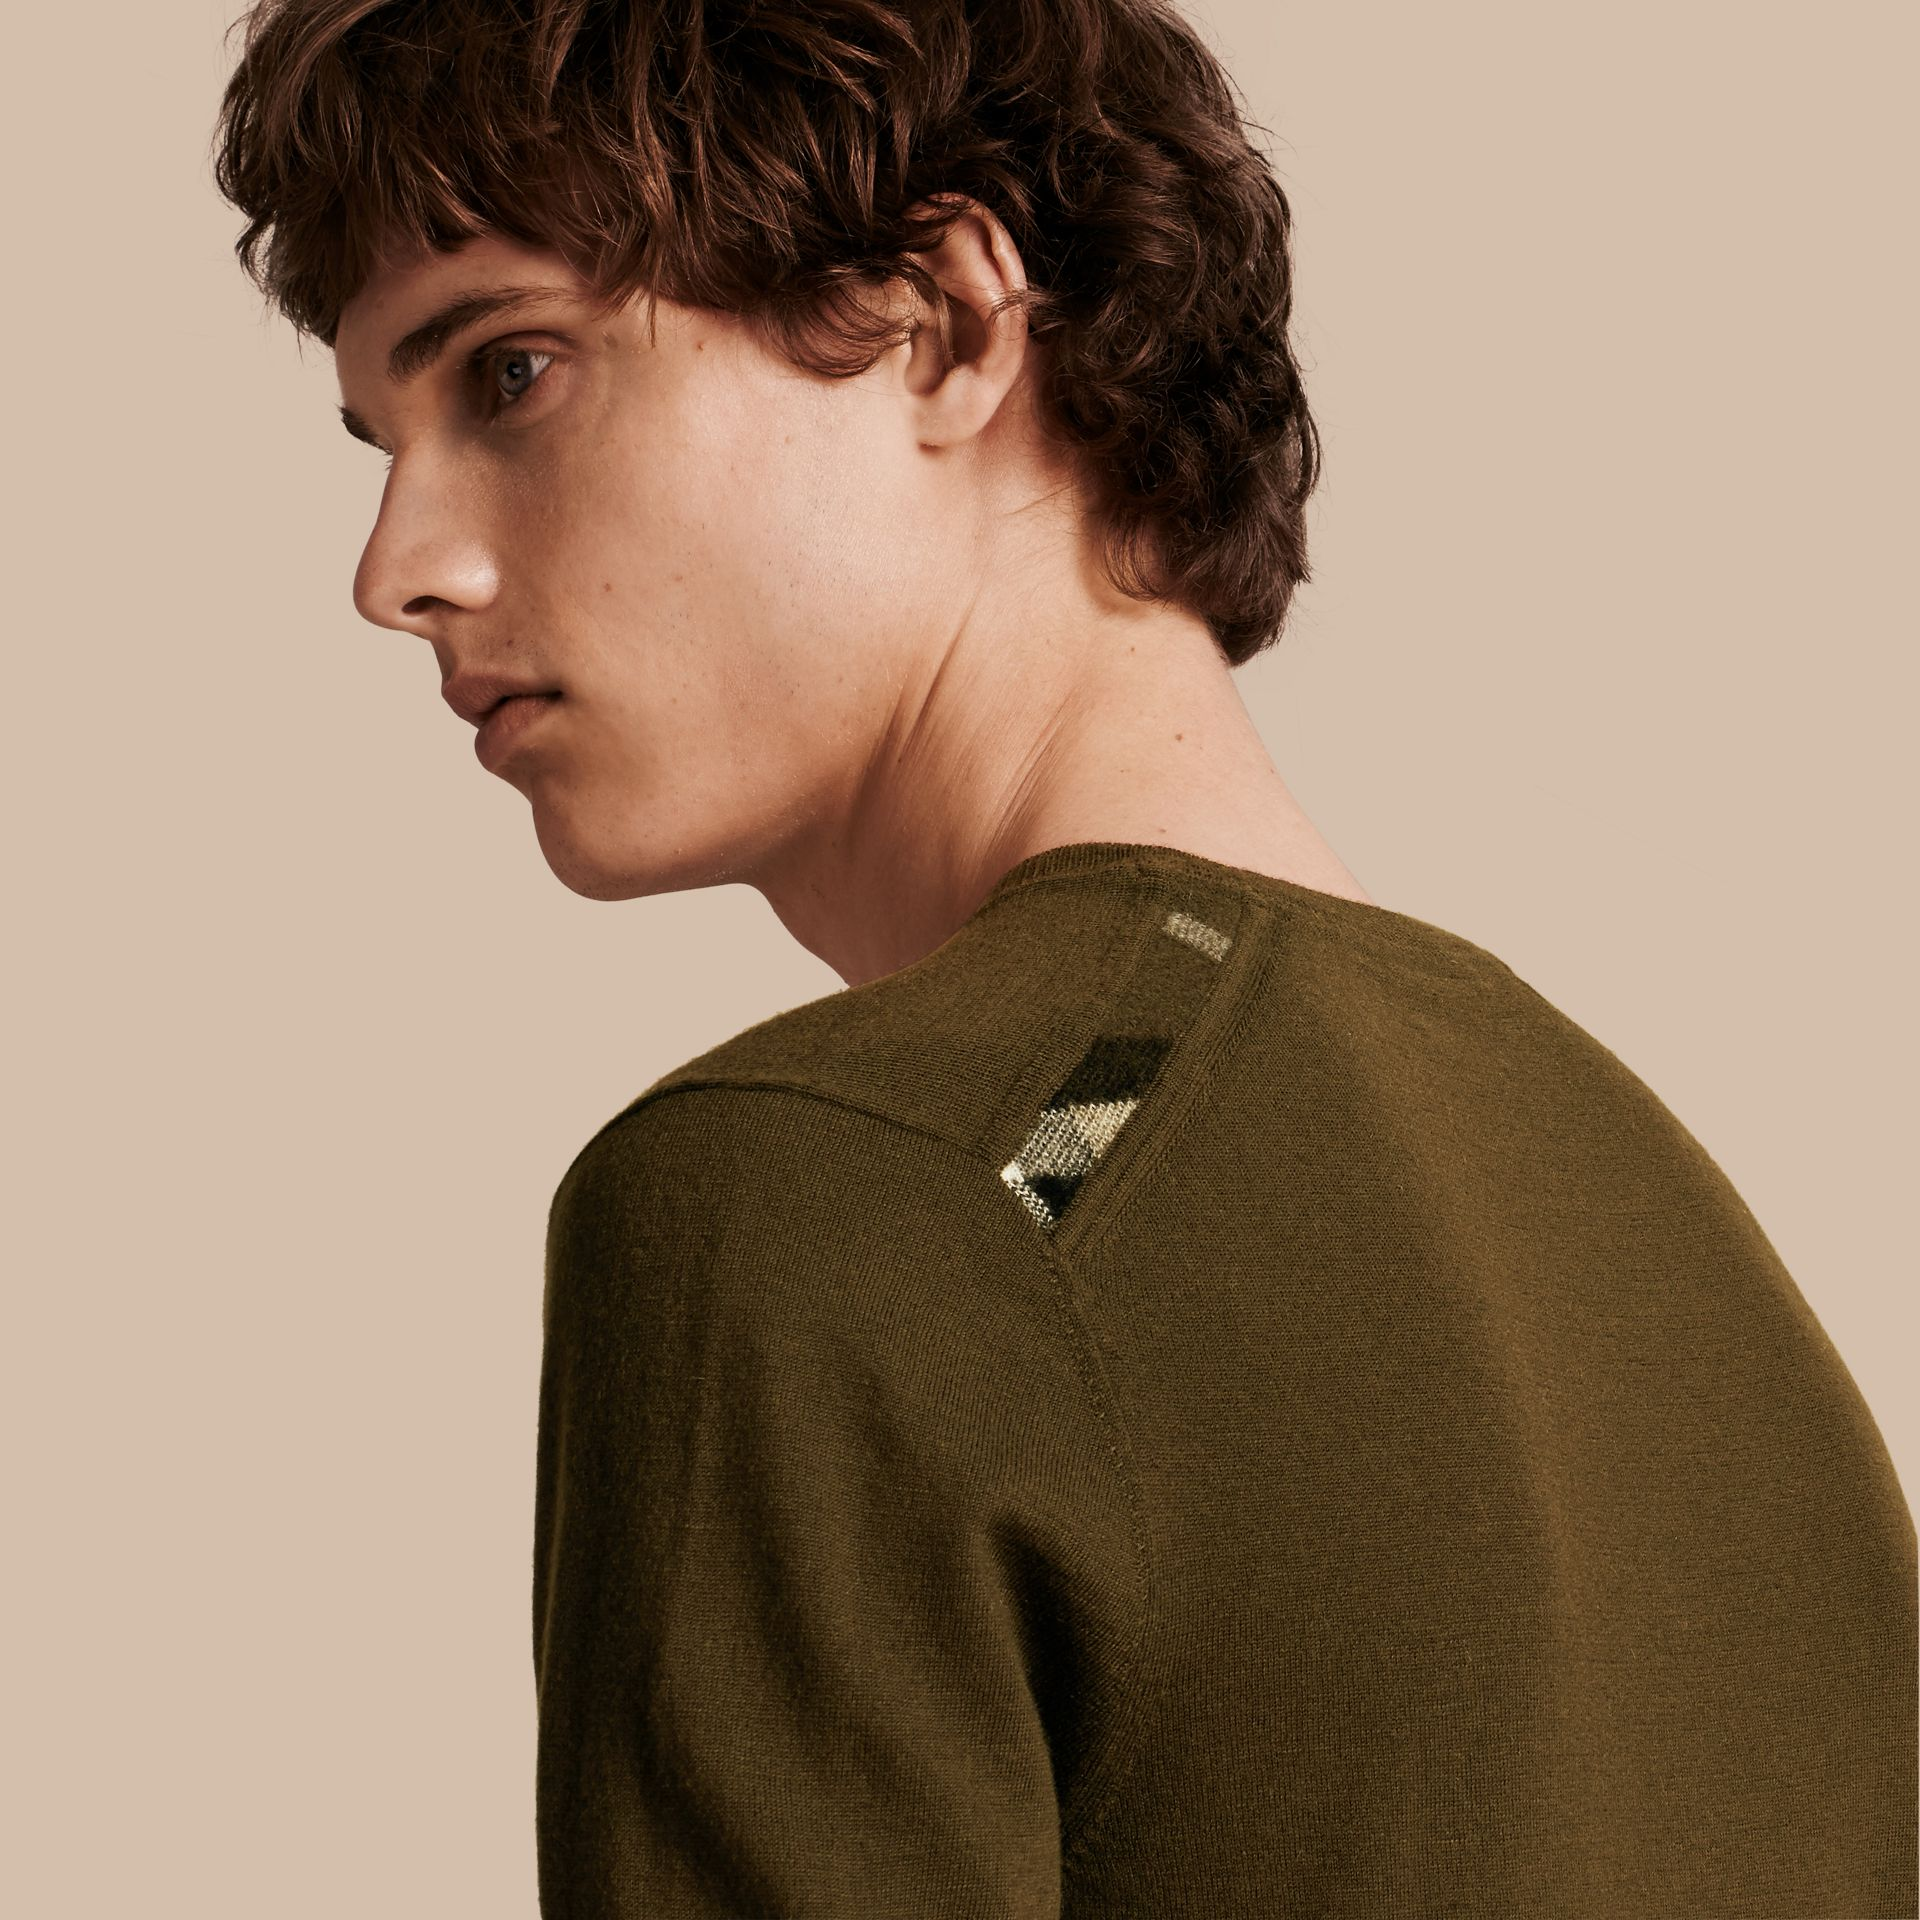 Military olive Lightweight Crew Neck Cashmere Sweater with Check Trim Military Olive - gallery image 5